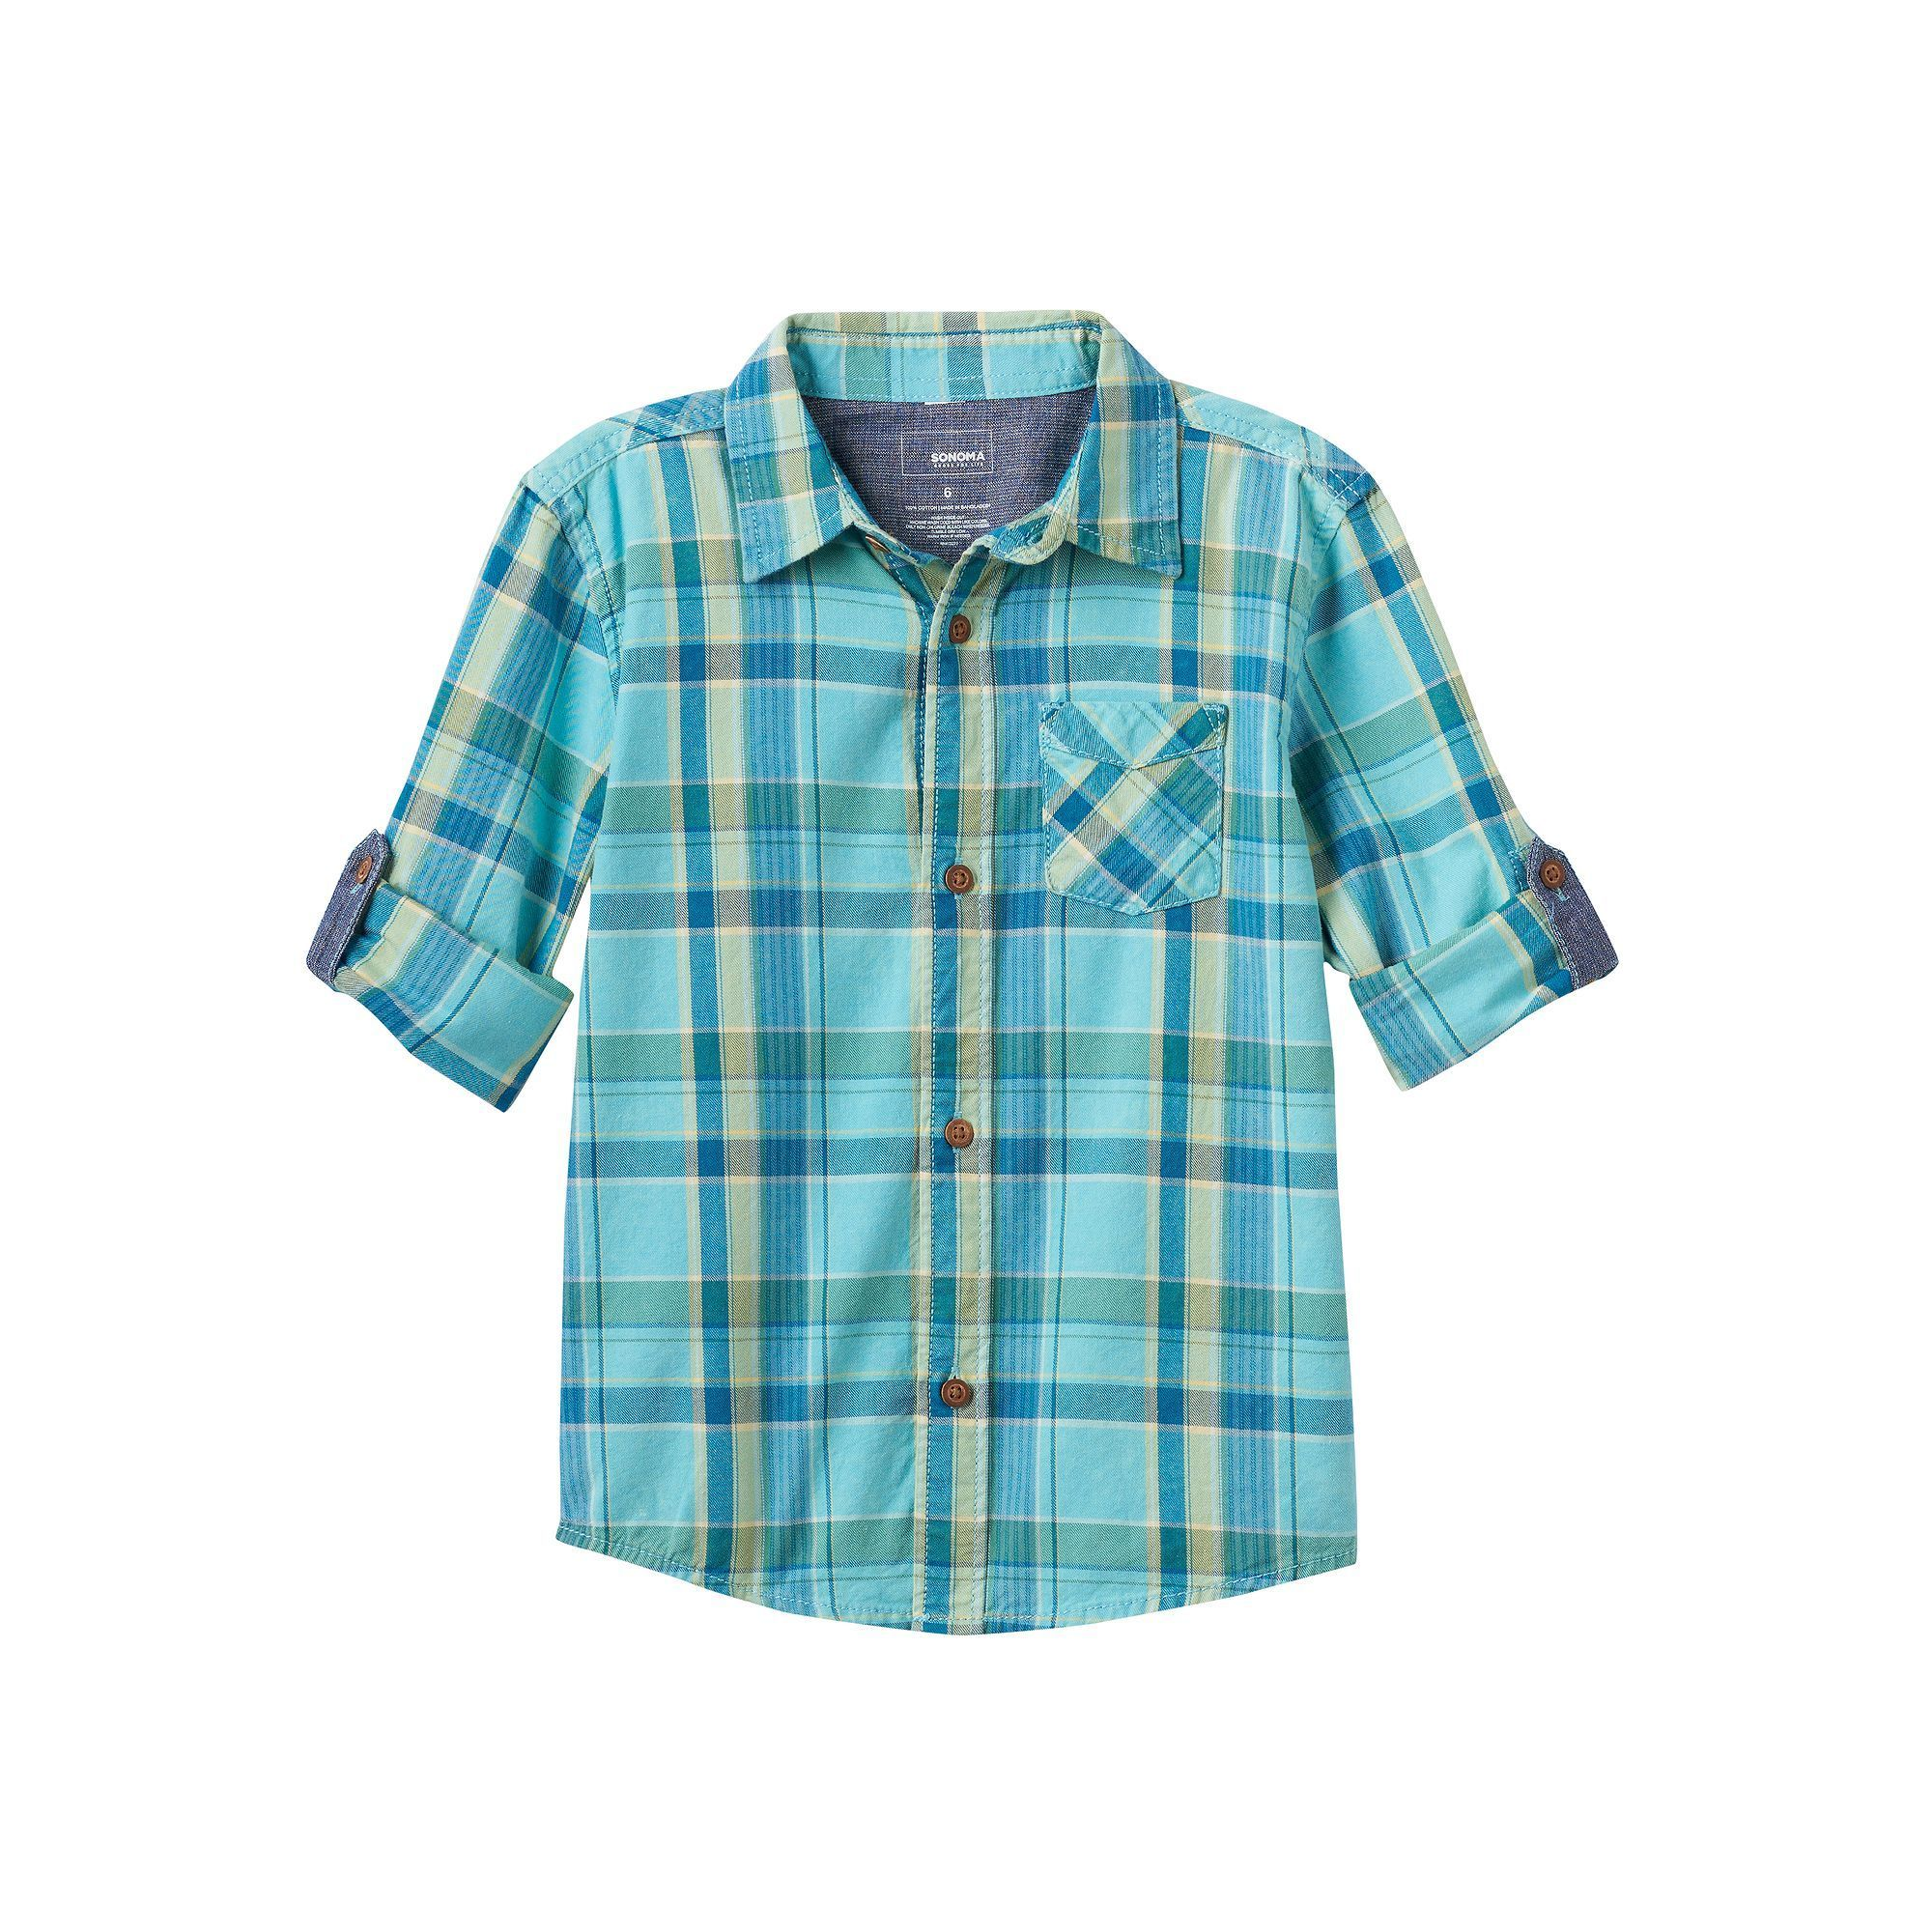 Flannel shirts at kohl's  SONOMA Goods for Life Boys  SONOMA Goods for LifeTM Plaid Shirt